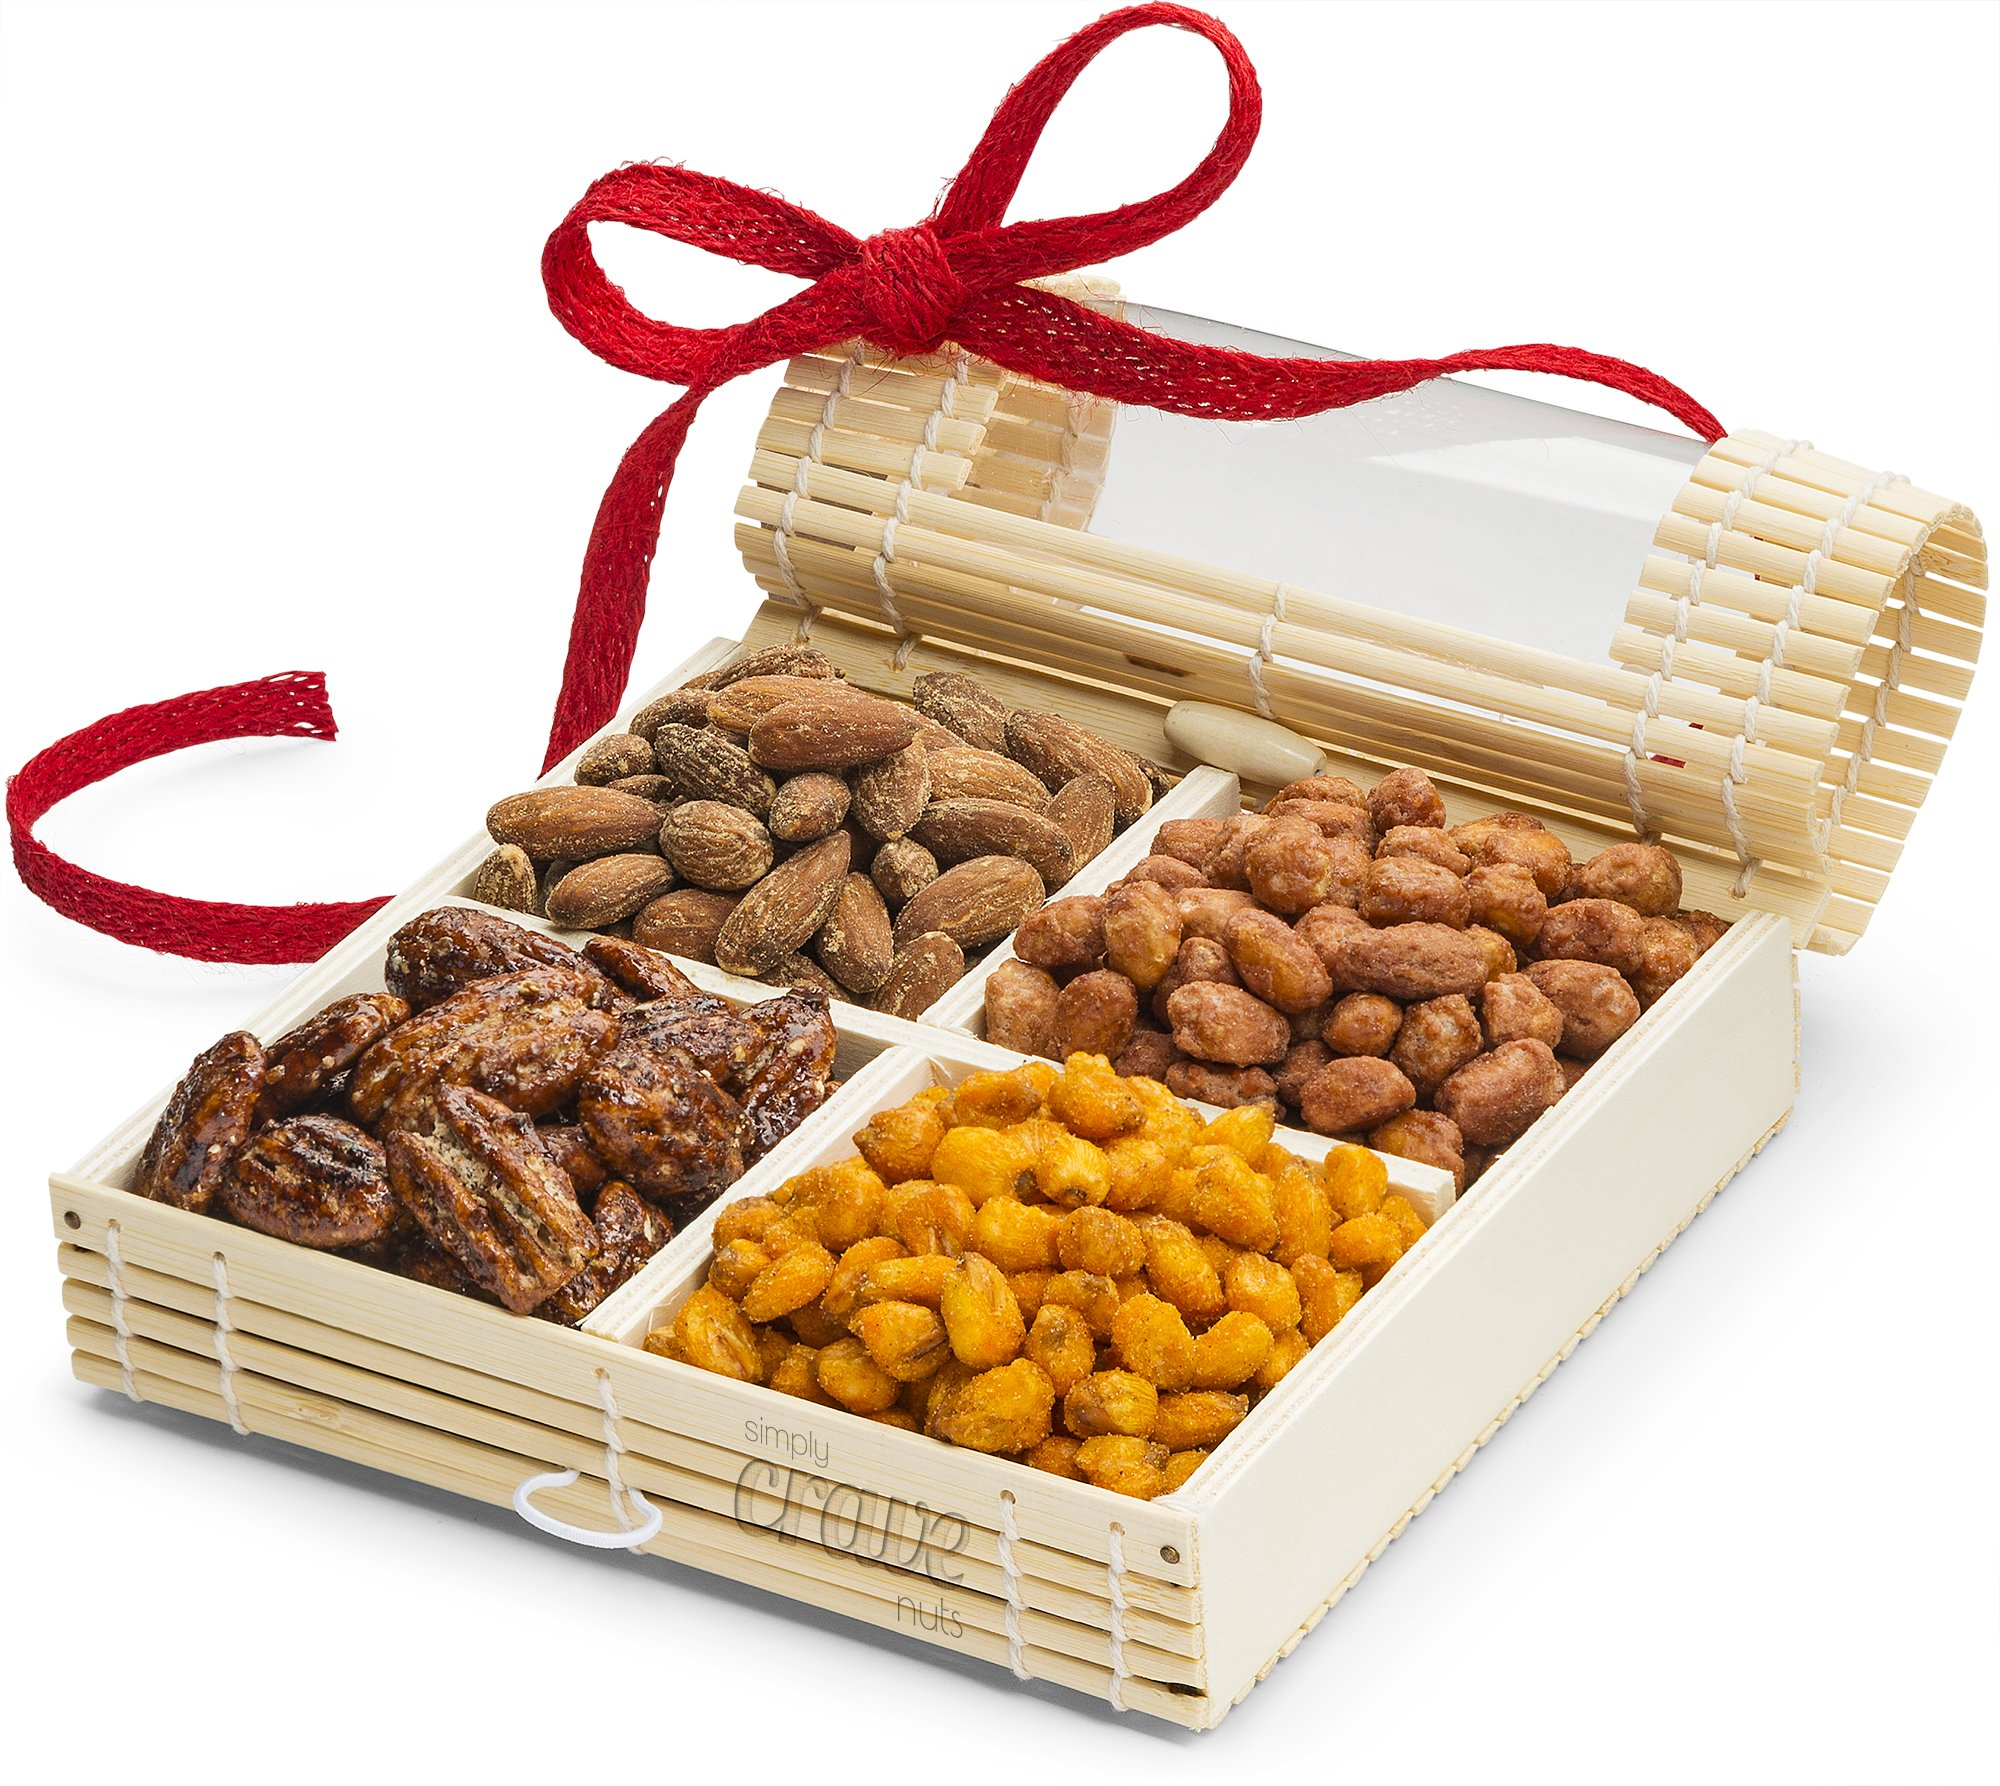 Gourmet Nuts Gift Baskets ~ Great Nut Assortment for Holiday, Corporate, Fathers Day or Thanksgiving ~ 4 Sectional Nut Basket with Stunningly Presented Nut Tray ~ Nut Gift Box and Assorted Nuts by by Simply Crave